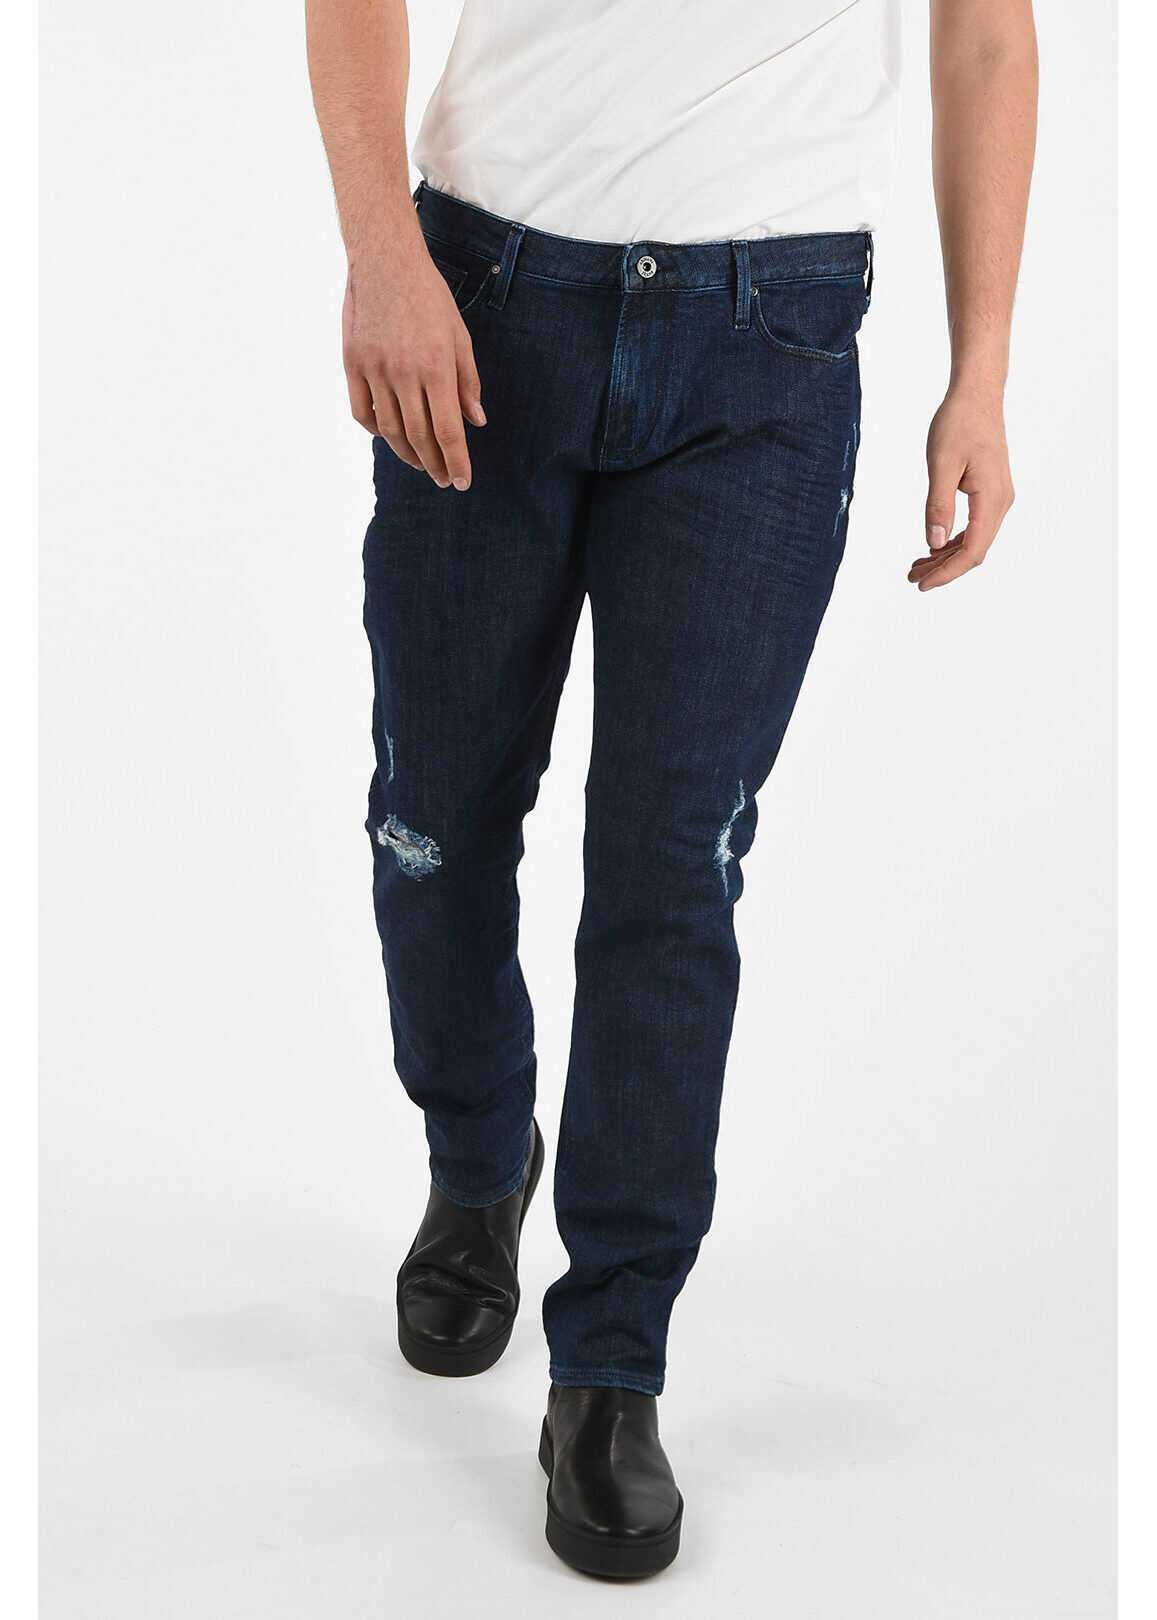 Armani ARMANI JEANS 18cm Slim Fit J06 Jeans L32 BLUE imagine